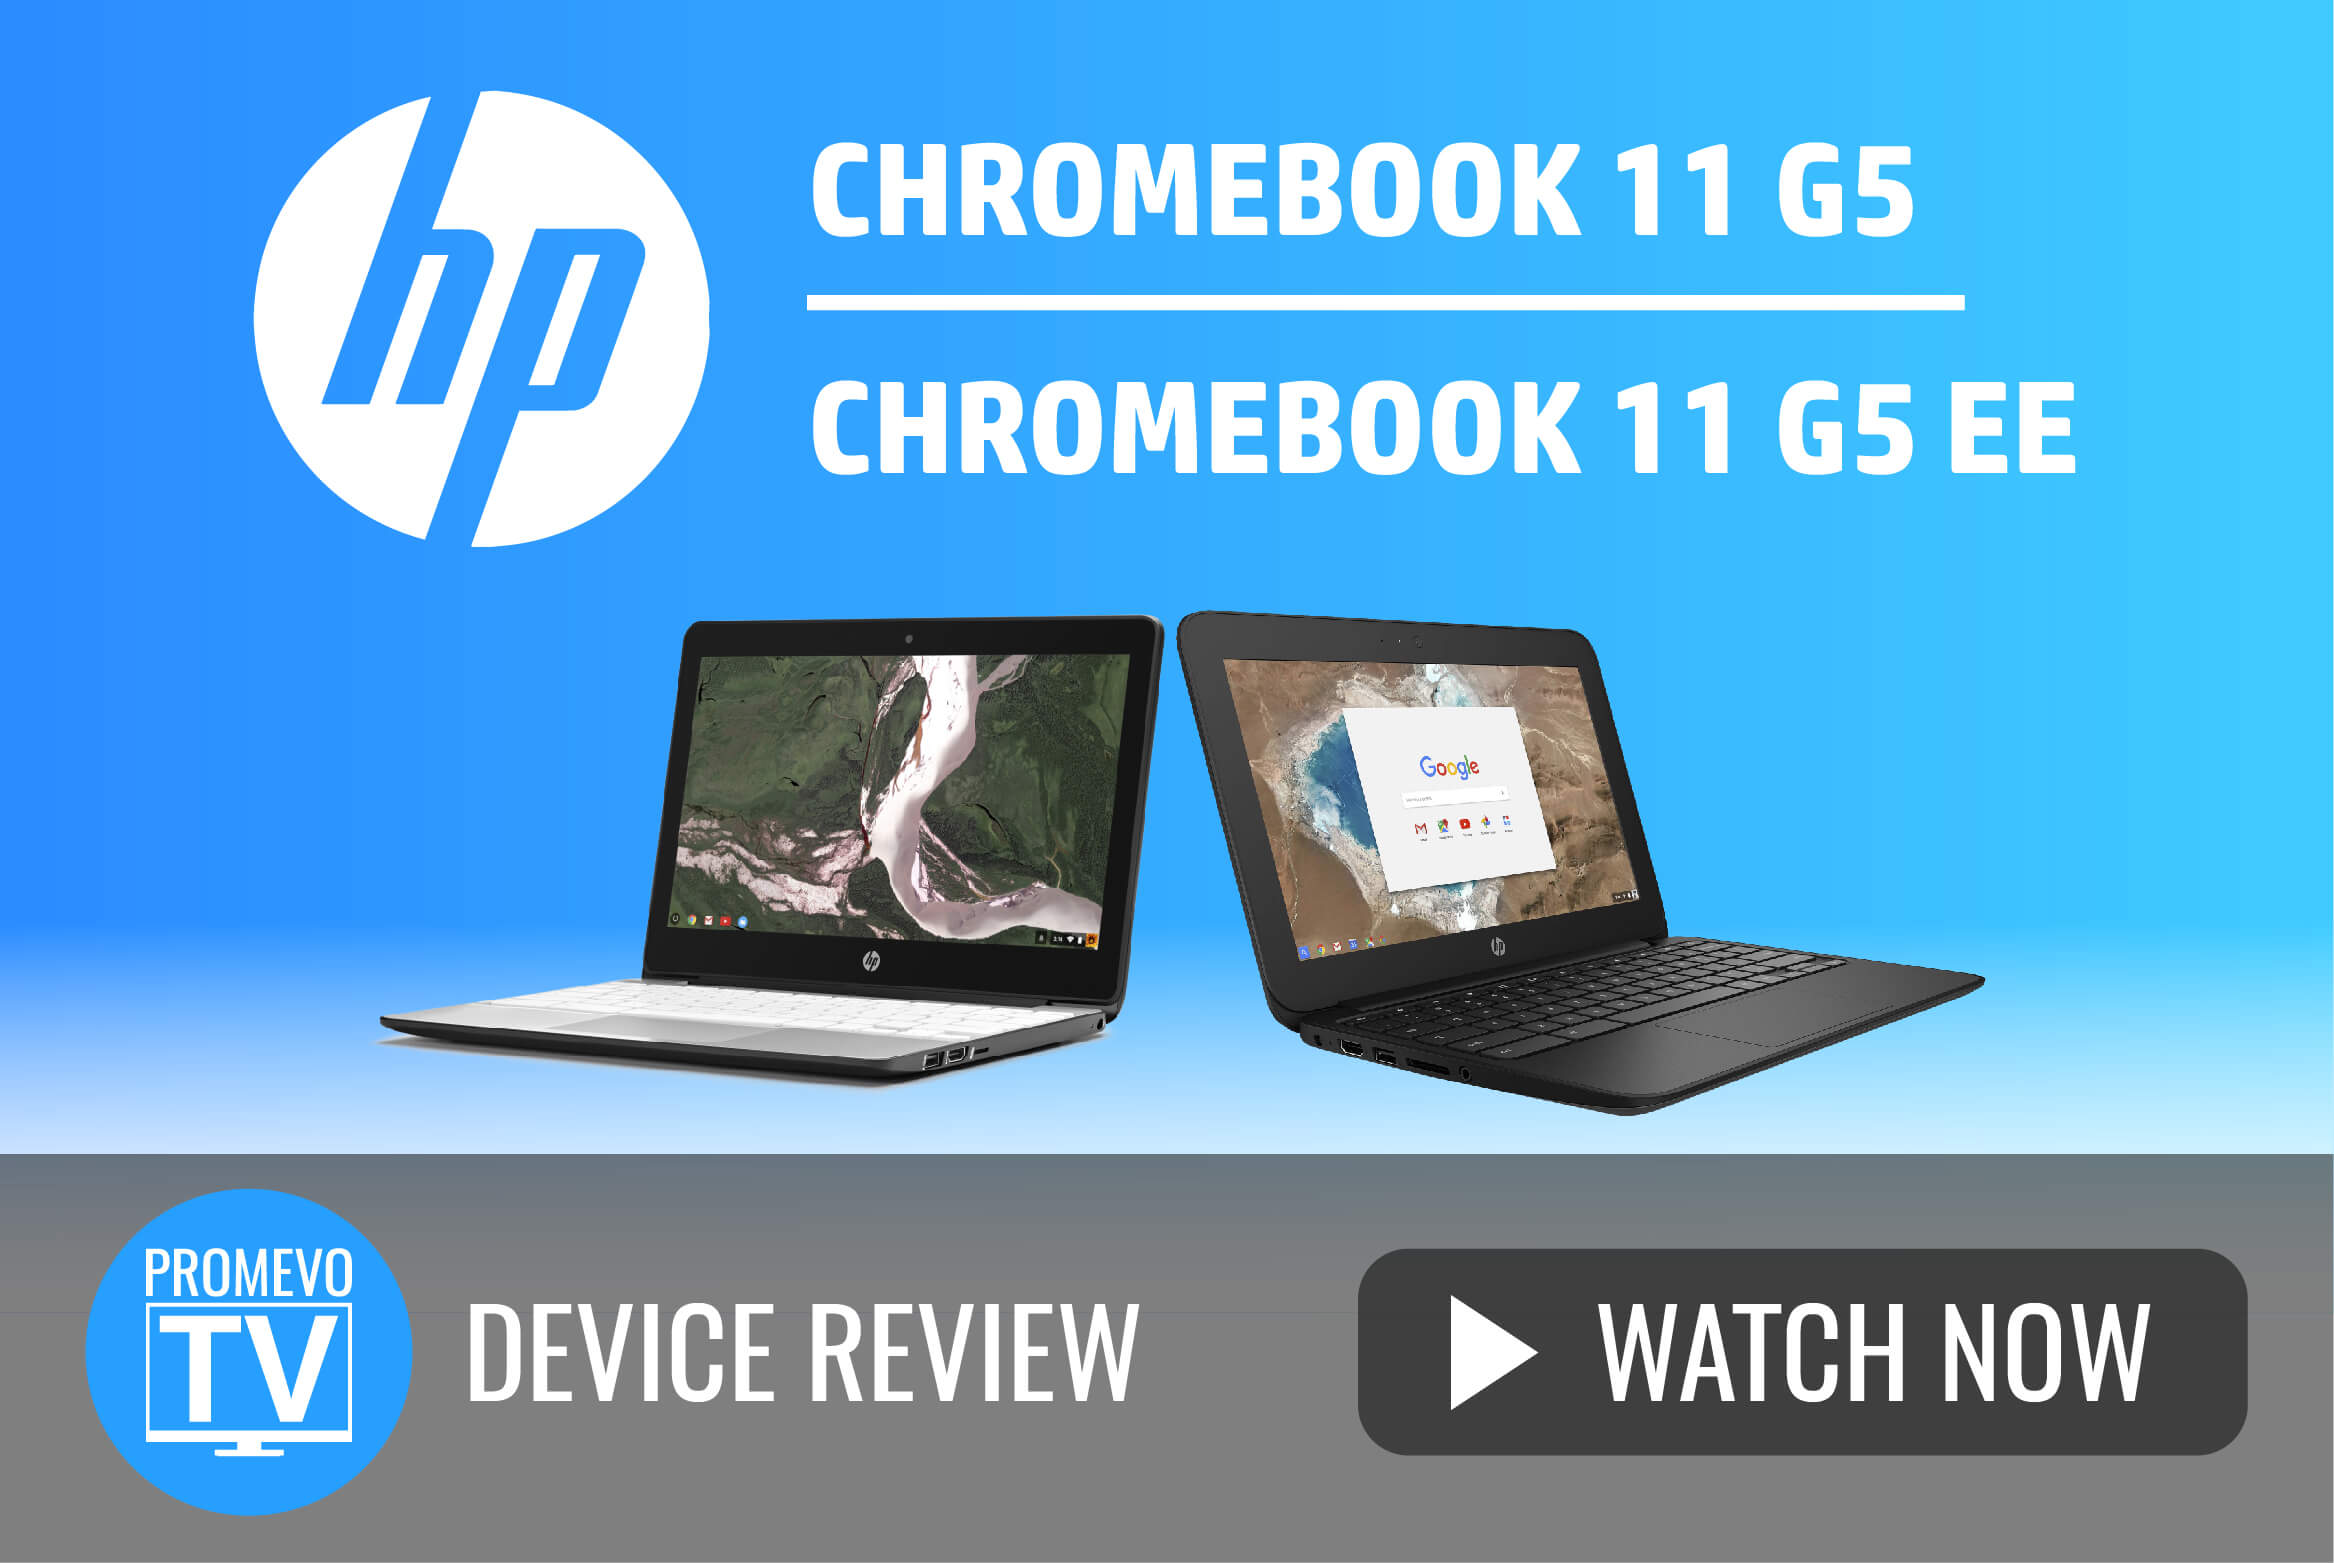 Mark checks out the very similar HP 11 Chromebook 11 G5 and 11 G5 EE